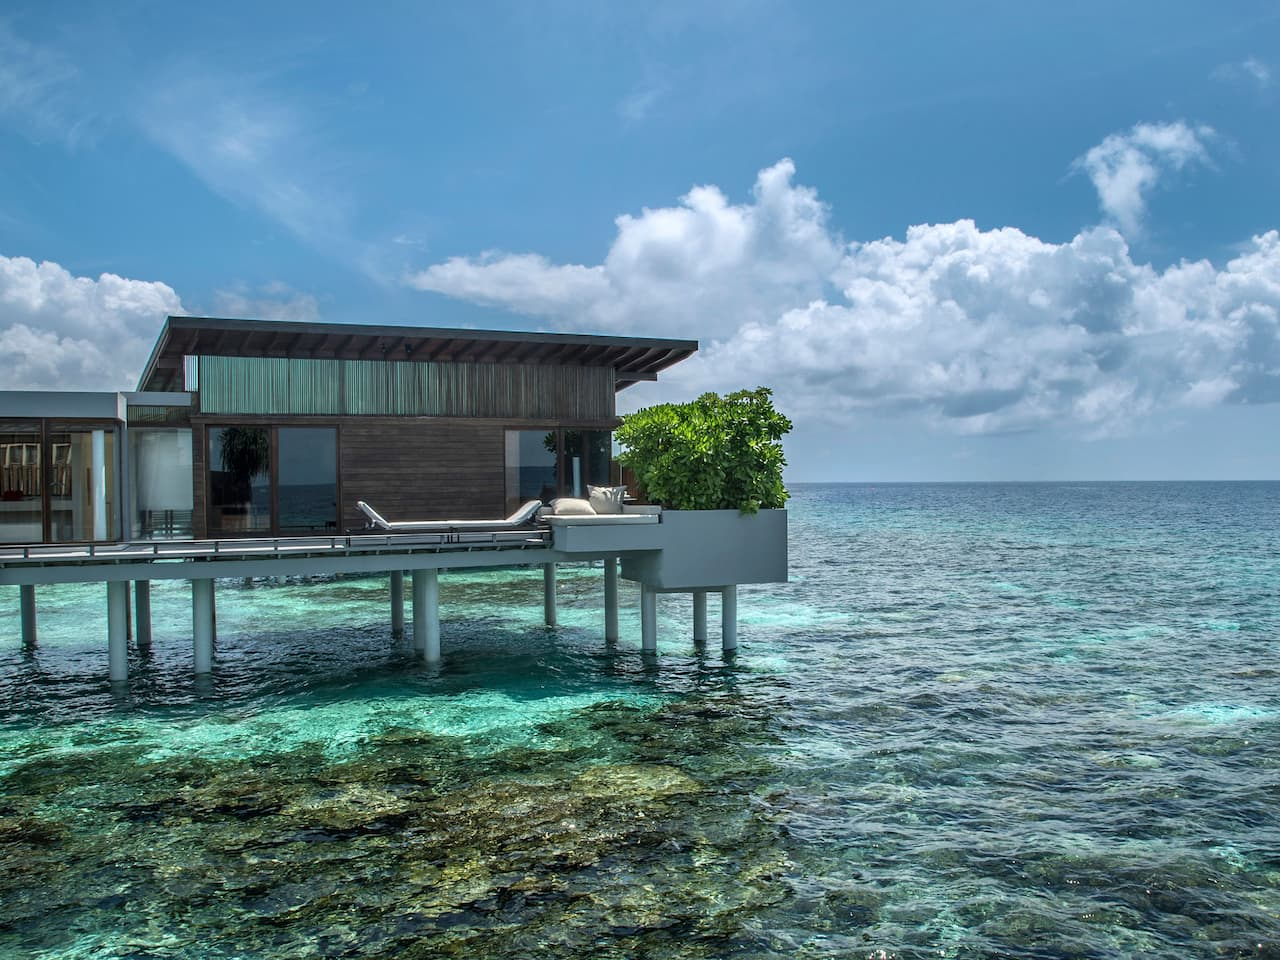 5-star Maldives Resort Maldives Overwater Villa